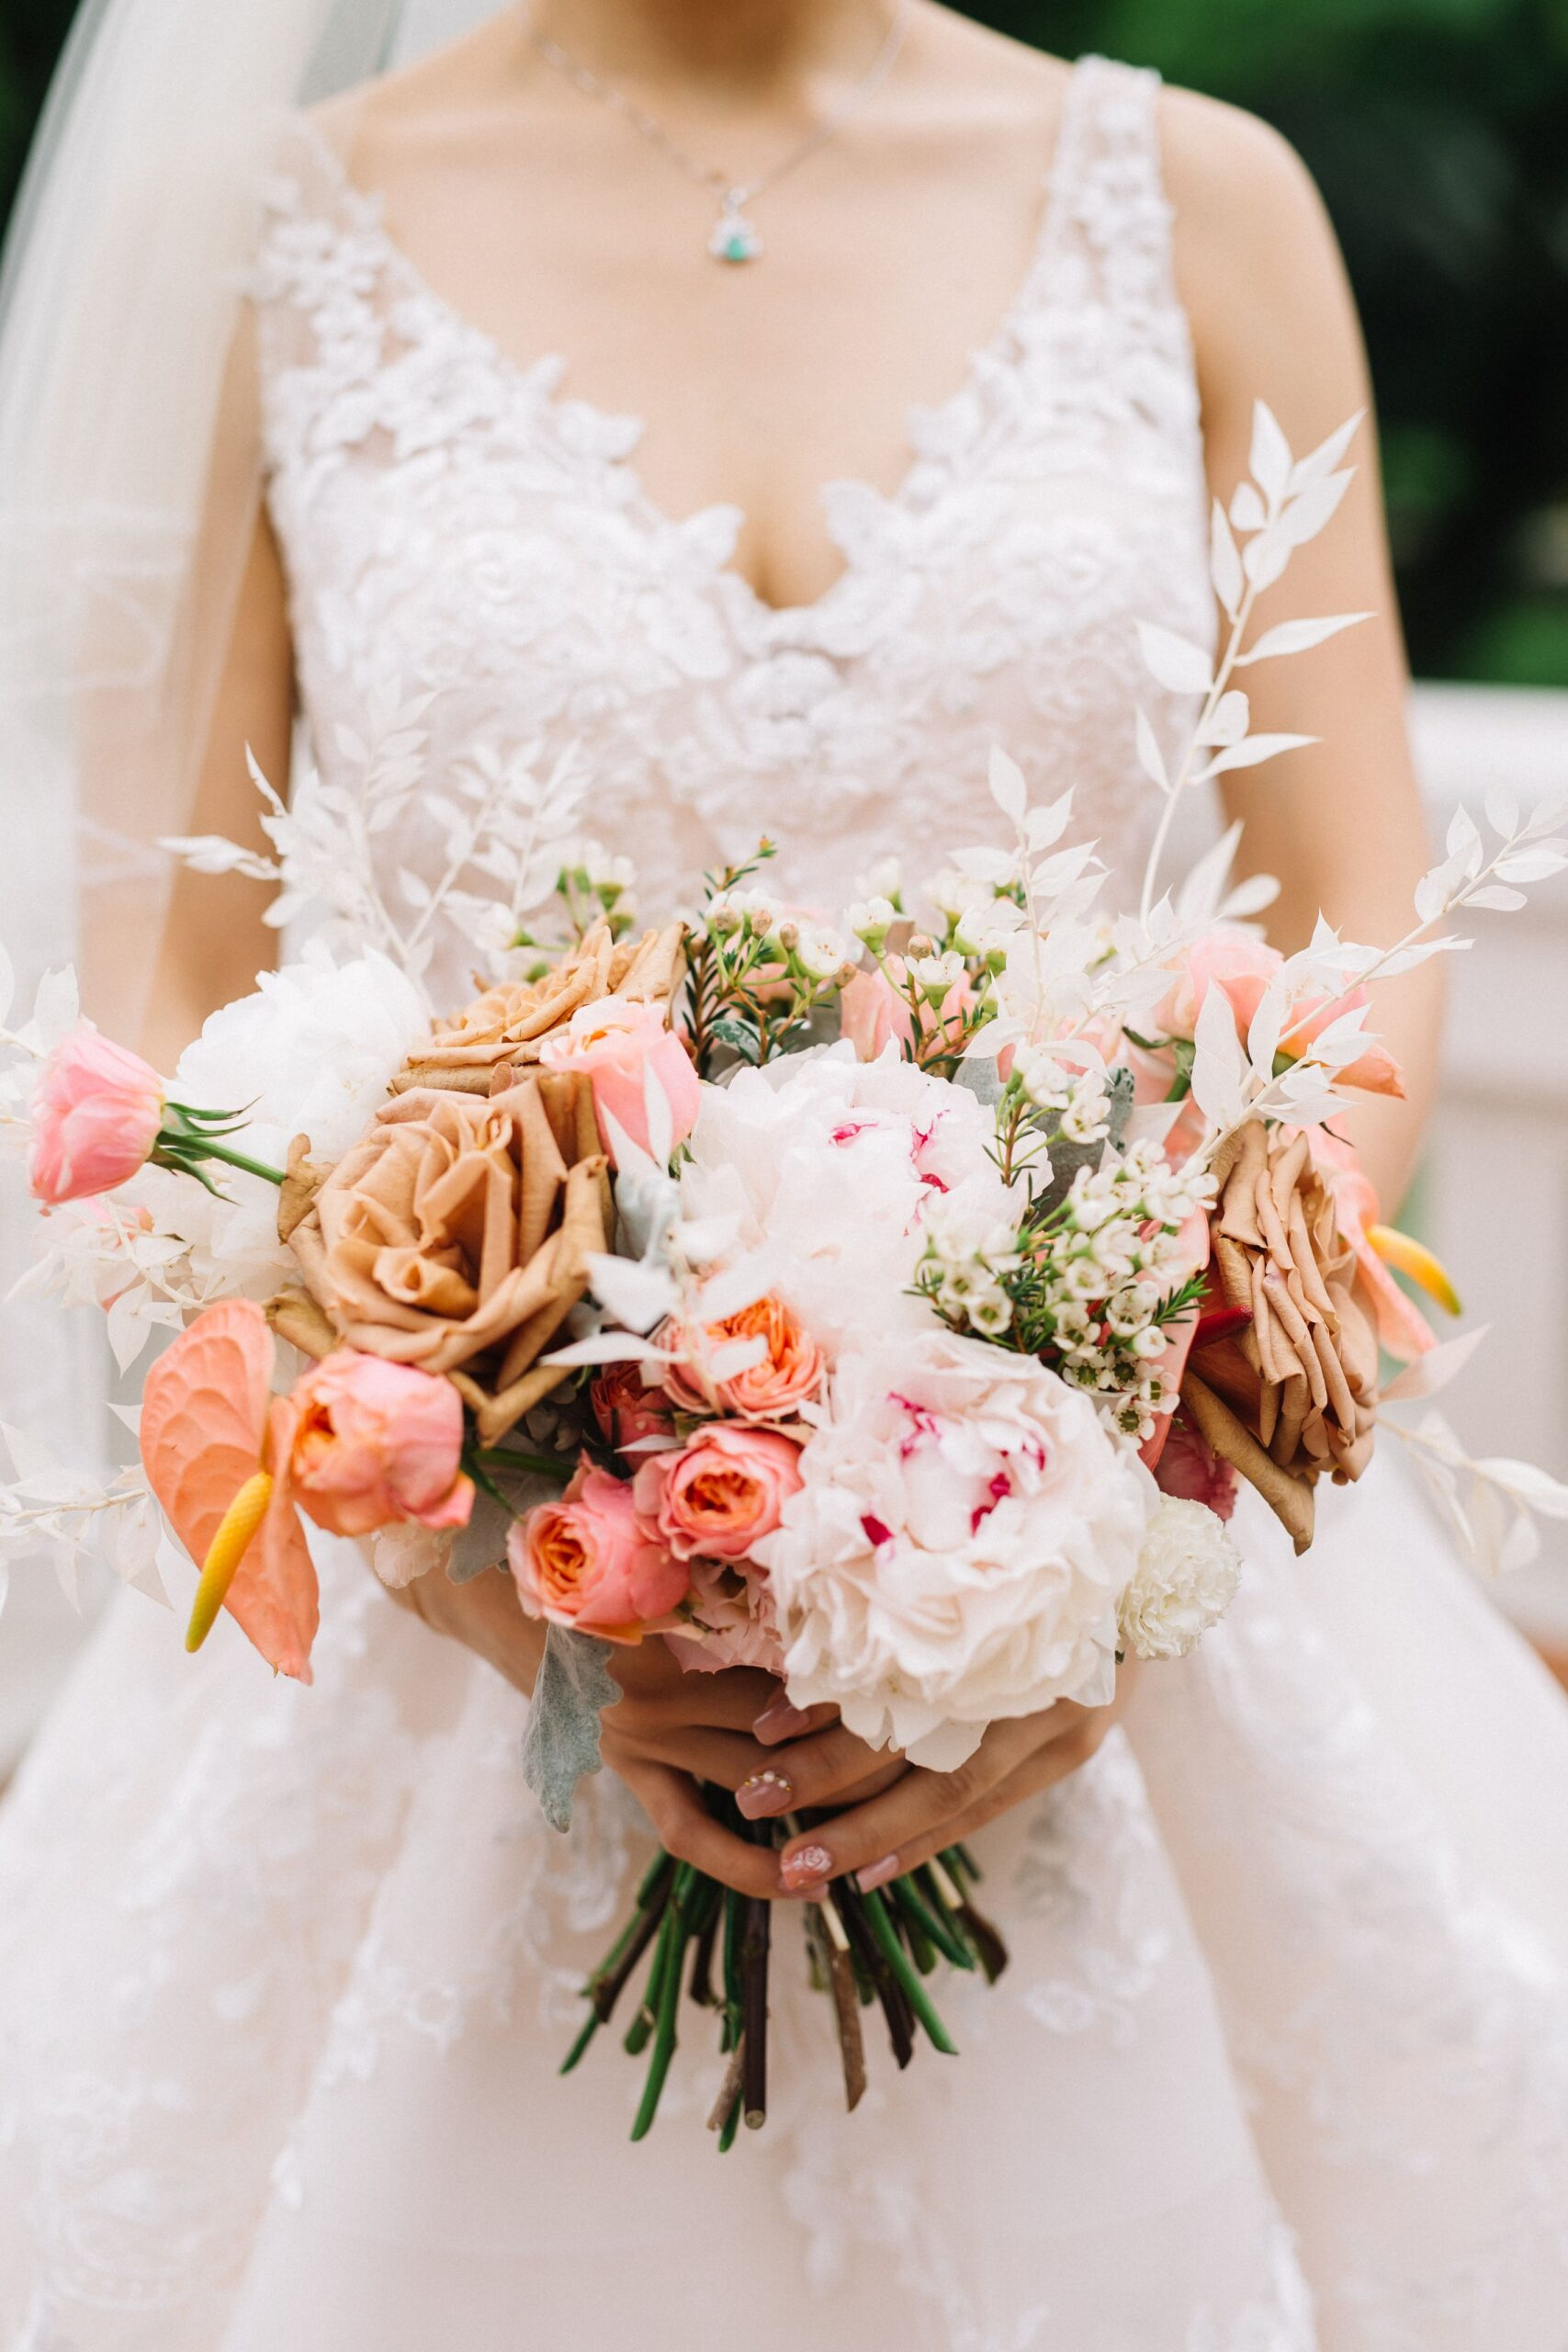 choose natural hand tied wedding bouquets for the wedding 5 - Choose Natural Hand Tied Wedding Bouquets for the Wedding